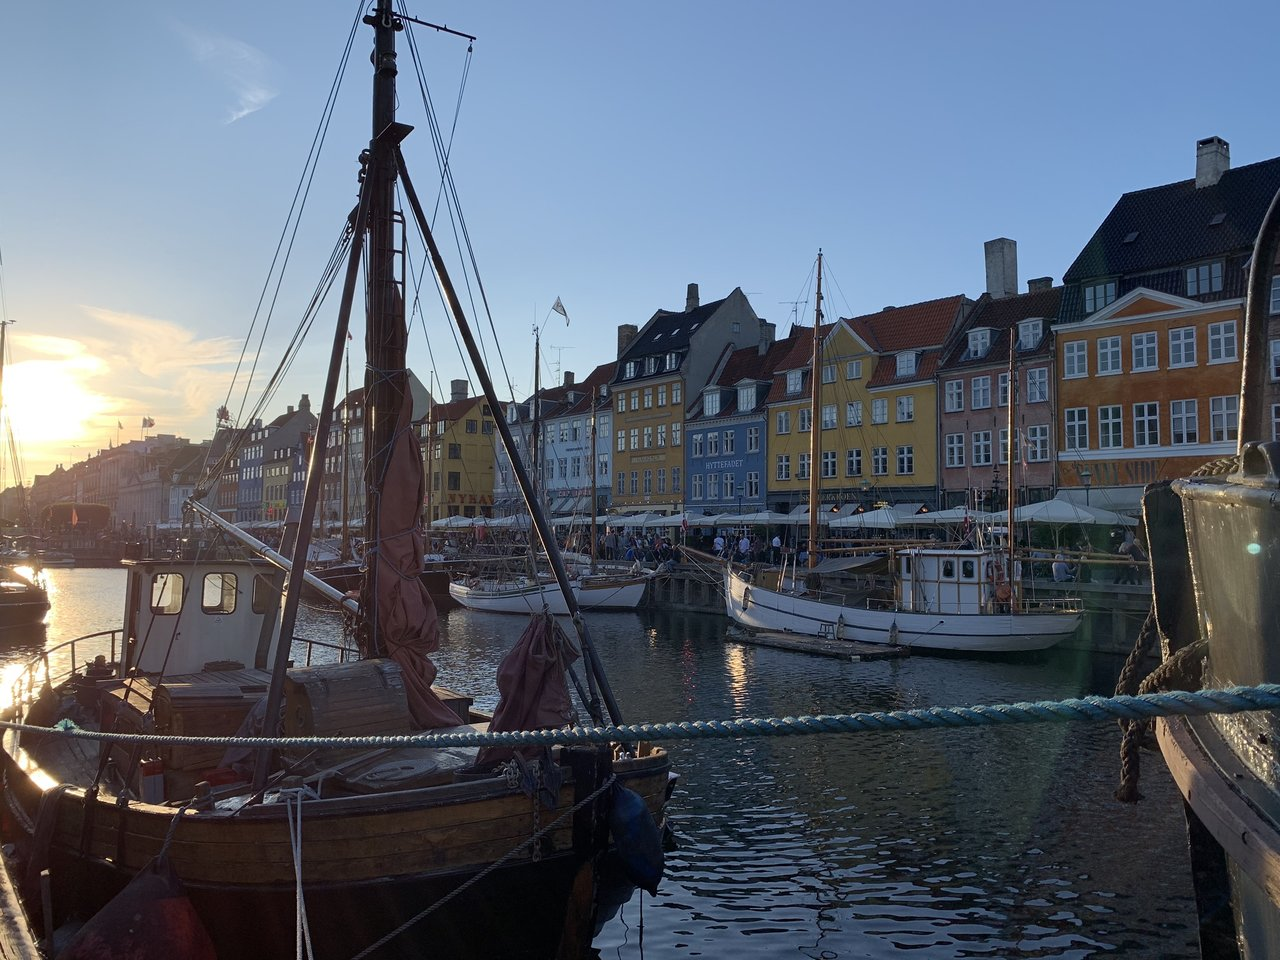 Nyhavn at Copenhagen | Photo taken by Michael W